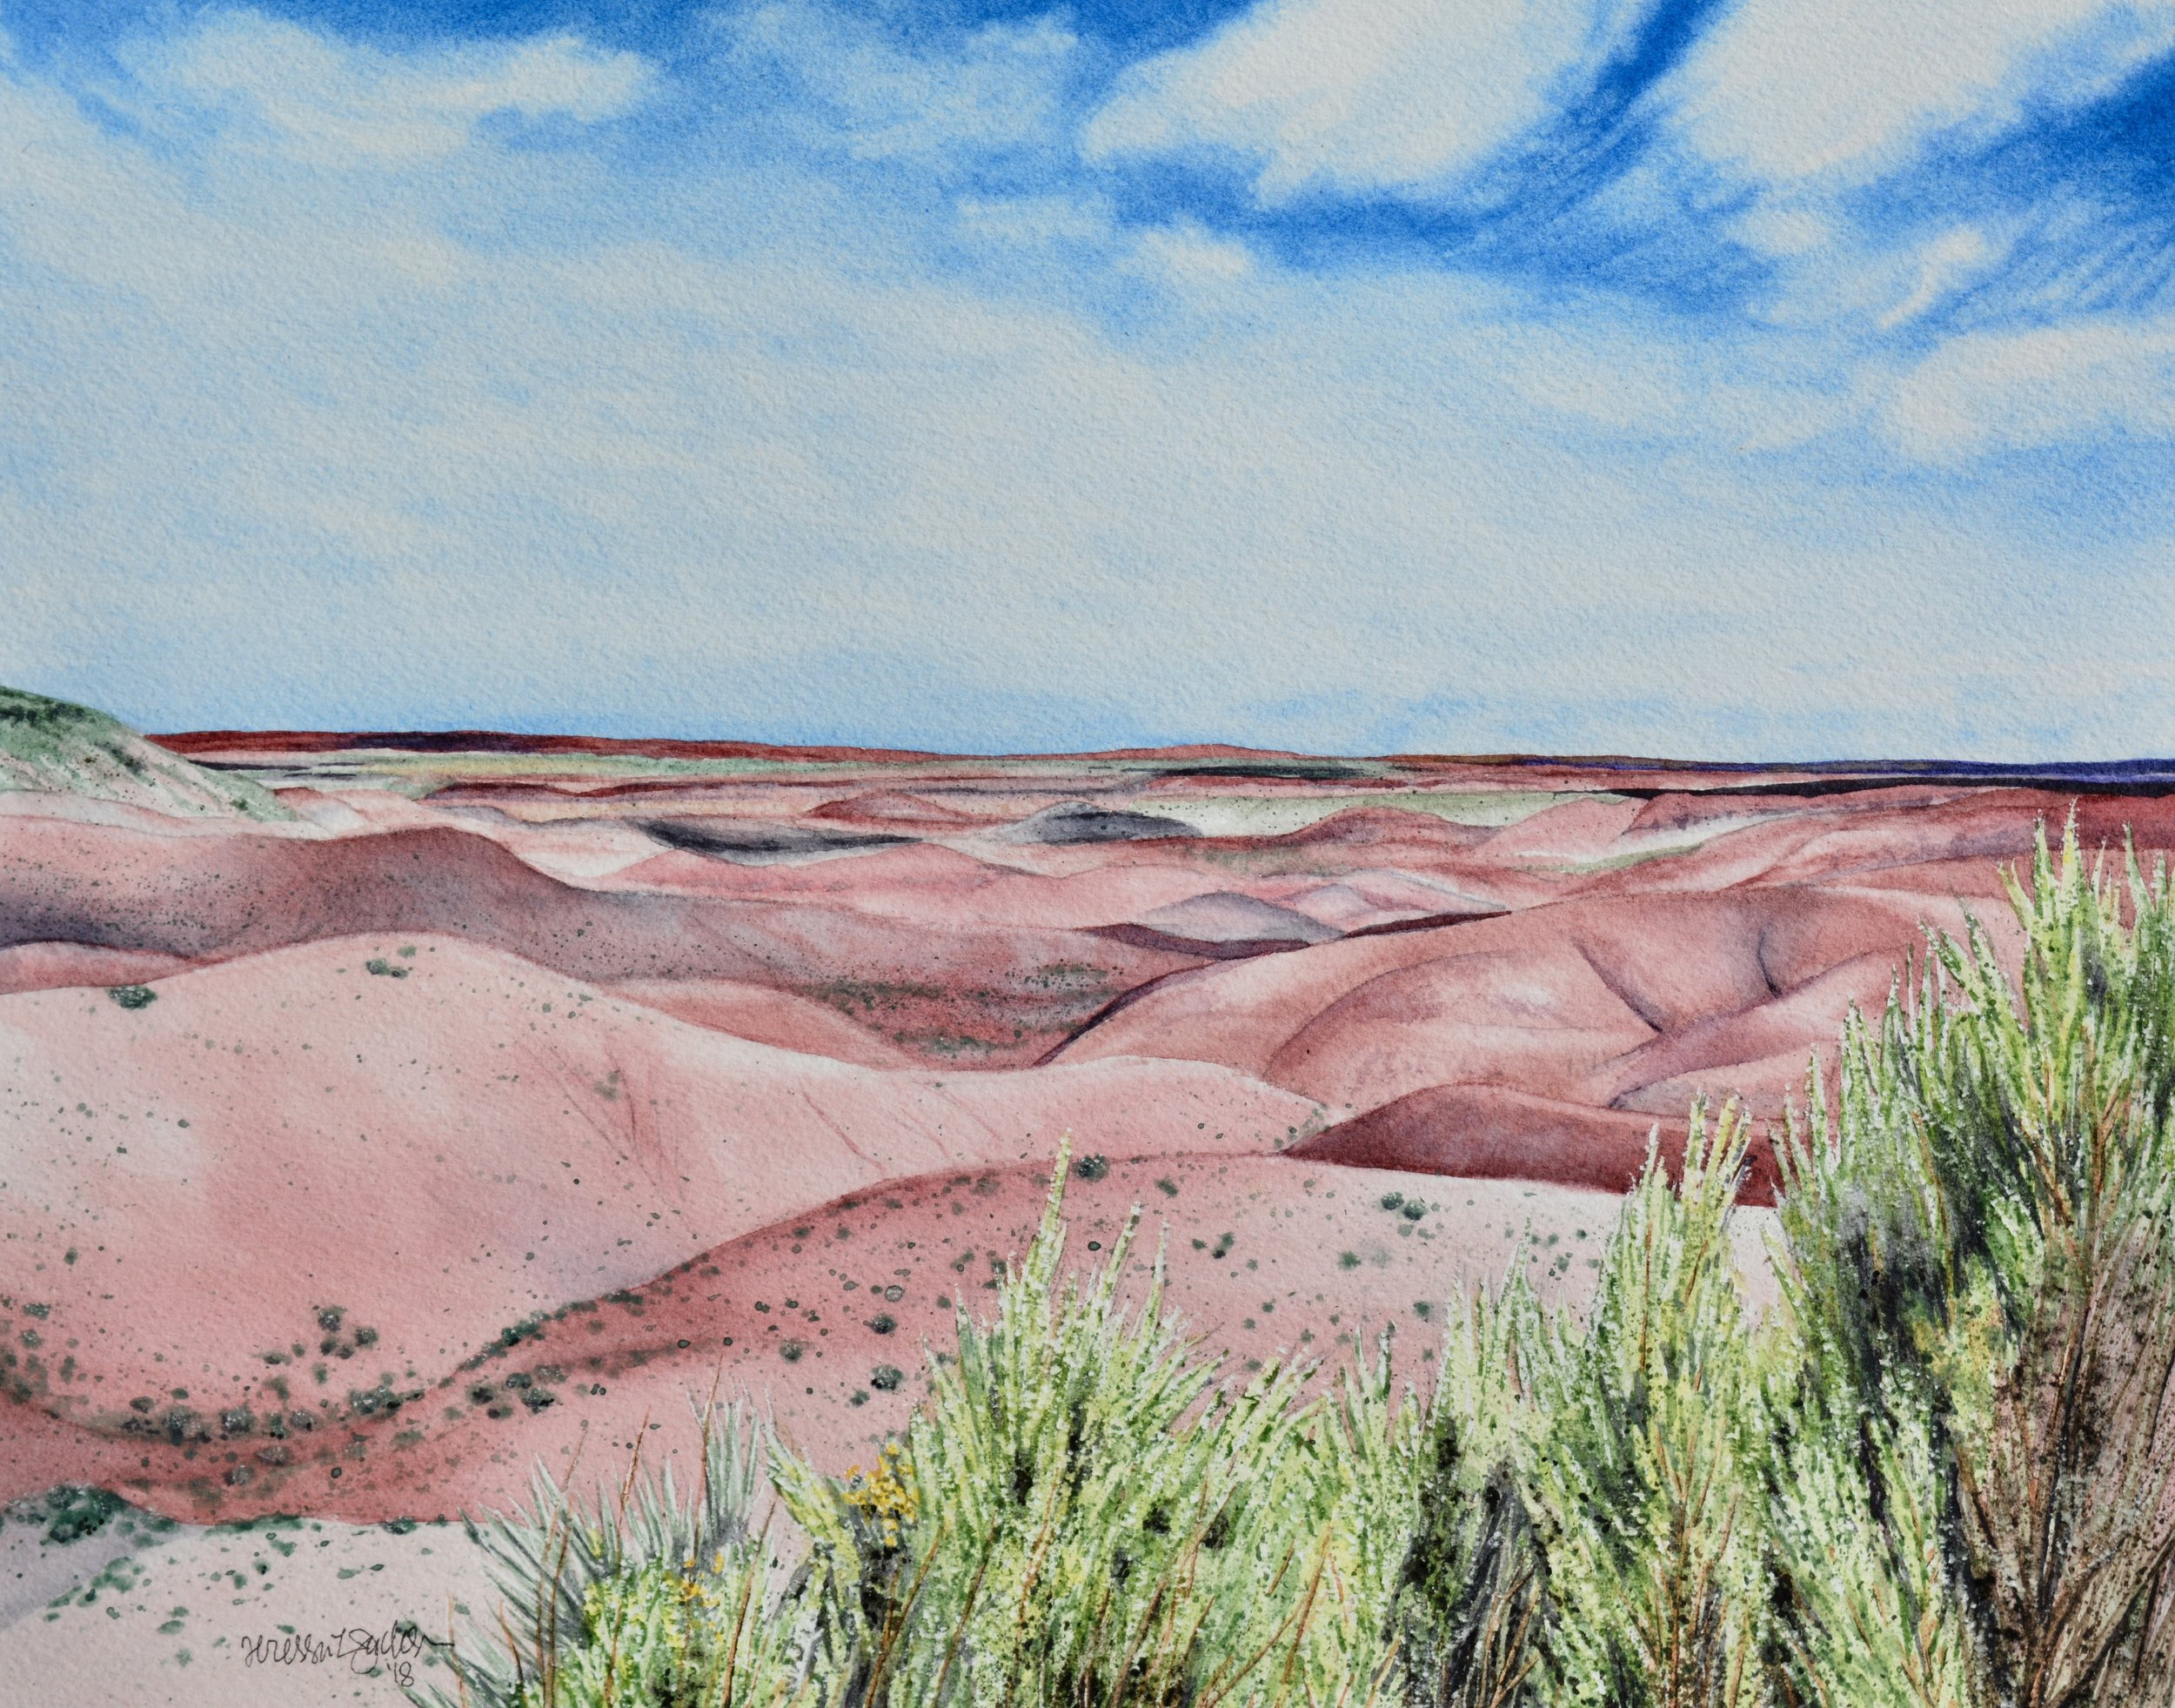 Painted Desert² Available  for sale  as of the date of this blog posting - will be added to my shop on 12/1/18